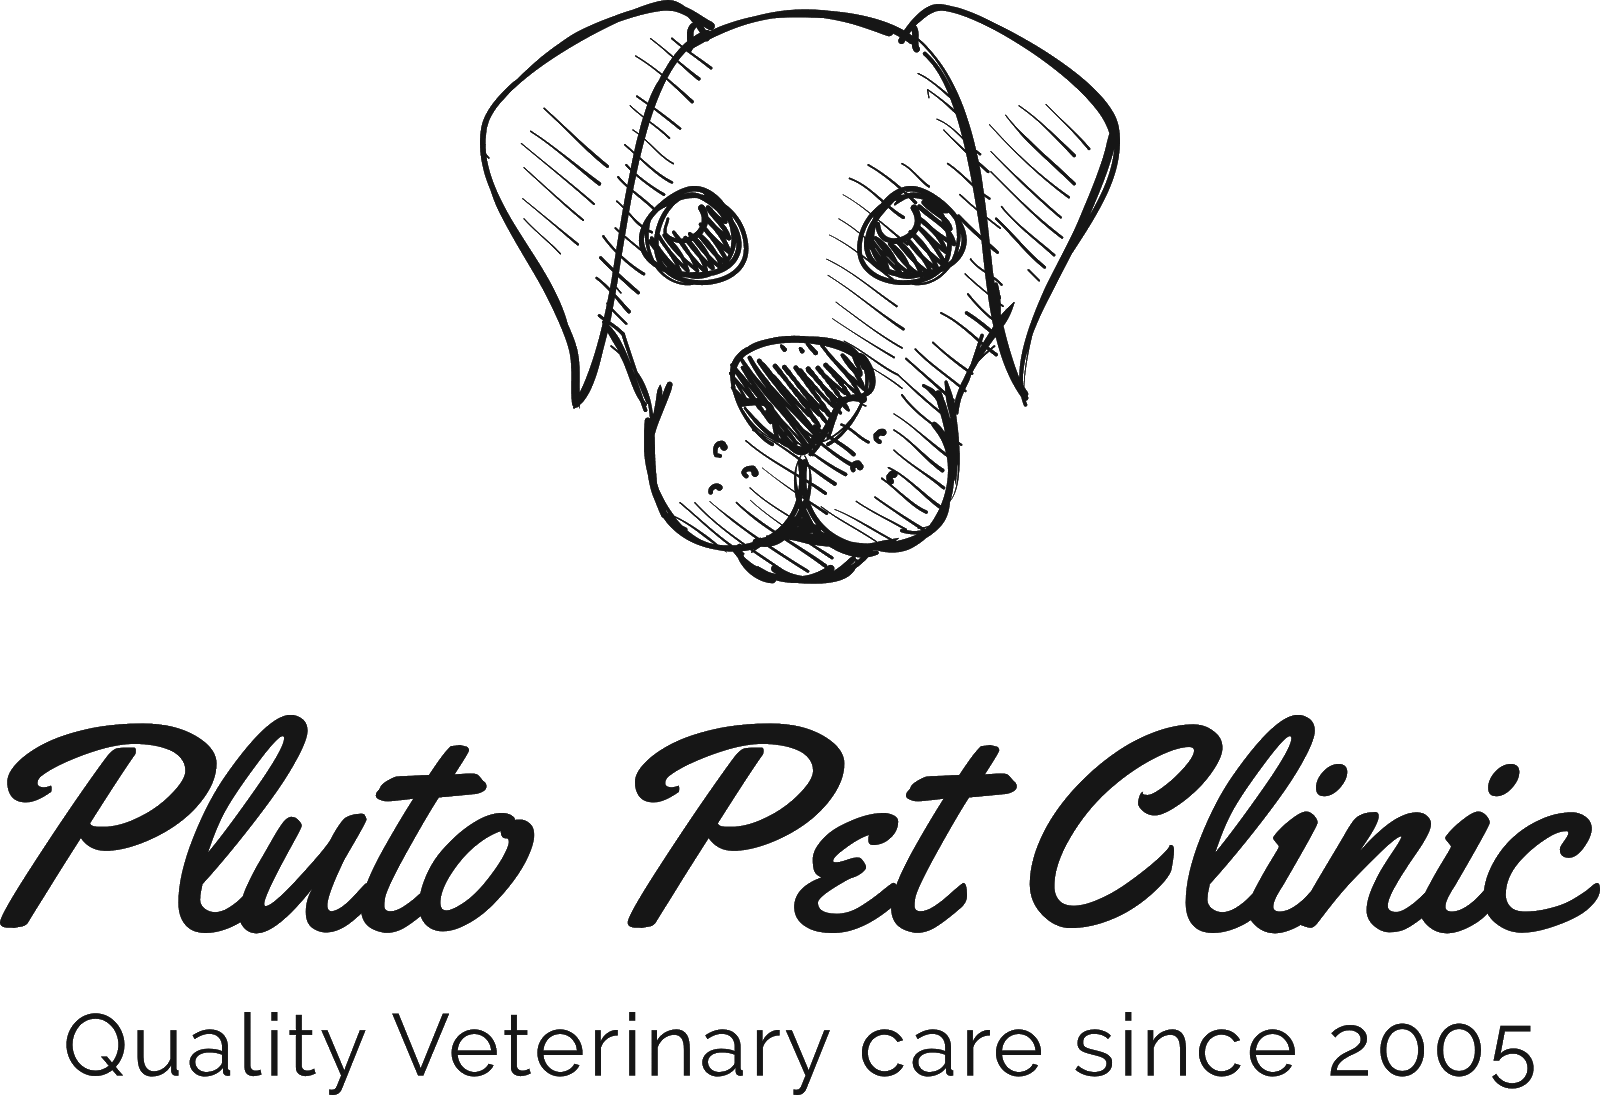 Pluto Pet Clinics Ranchi